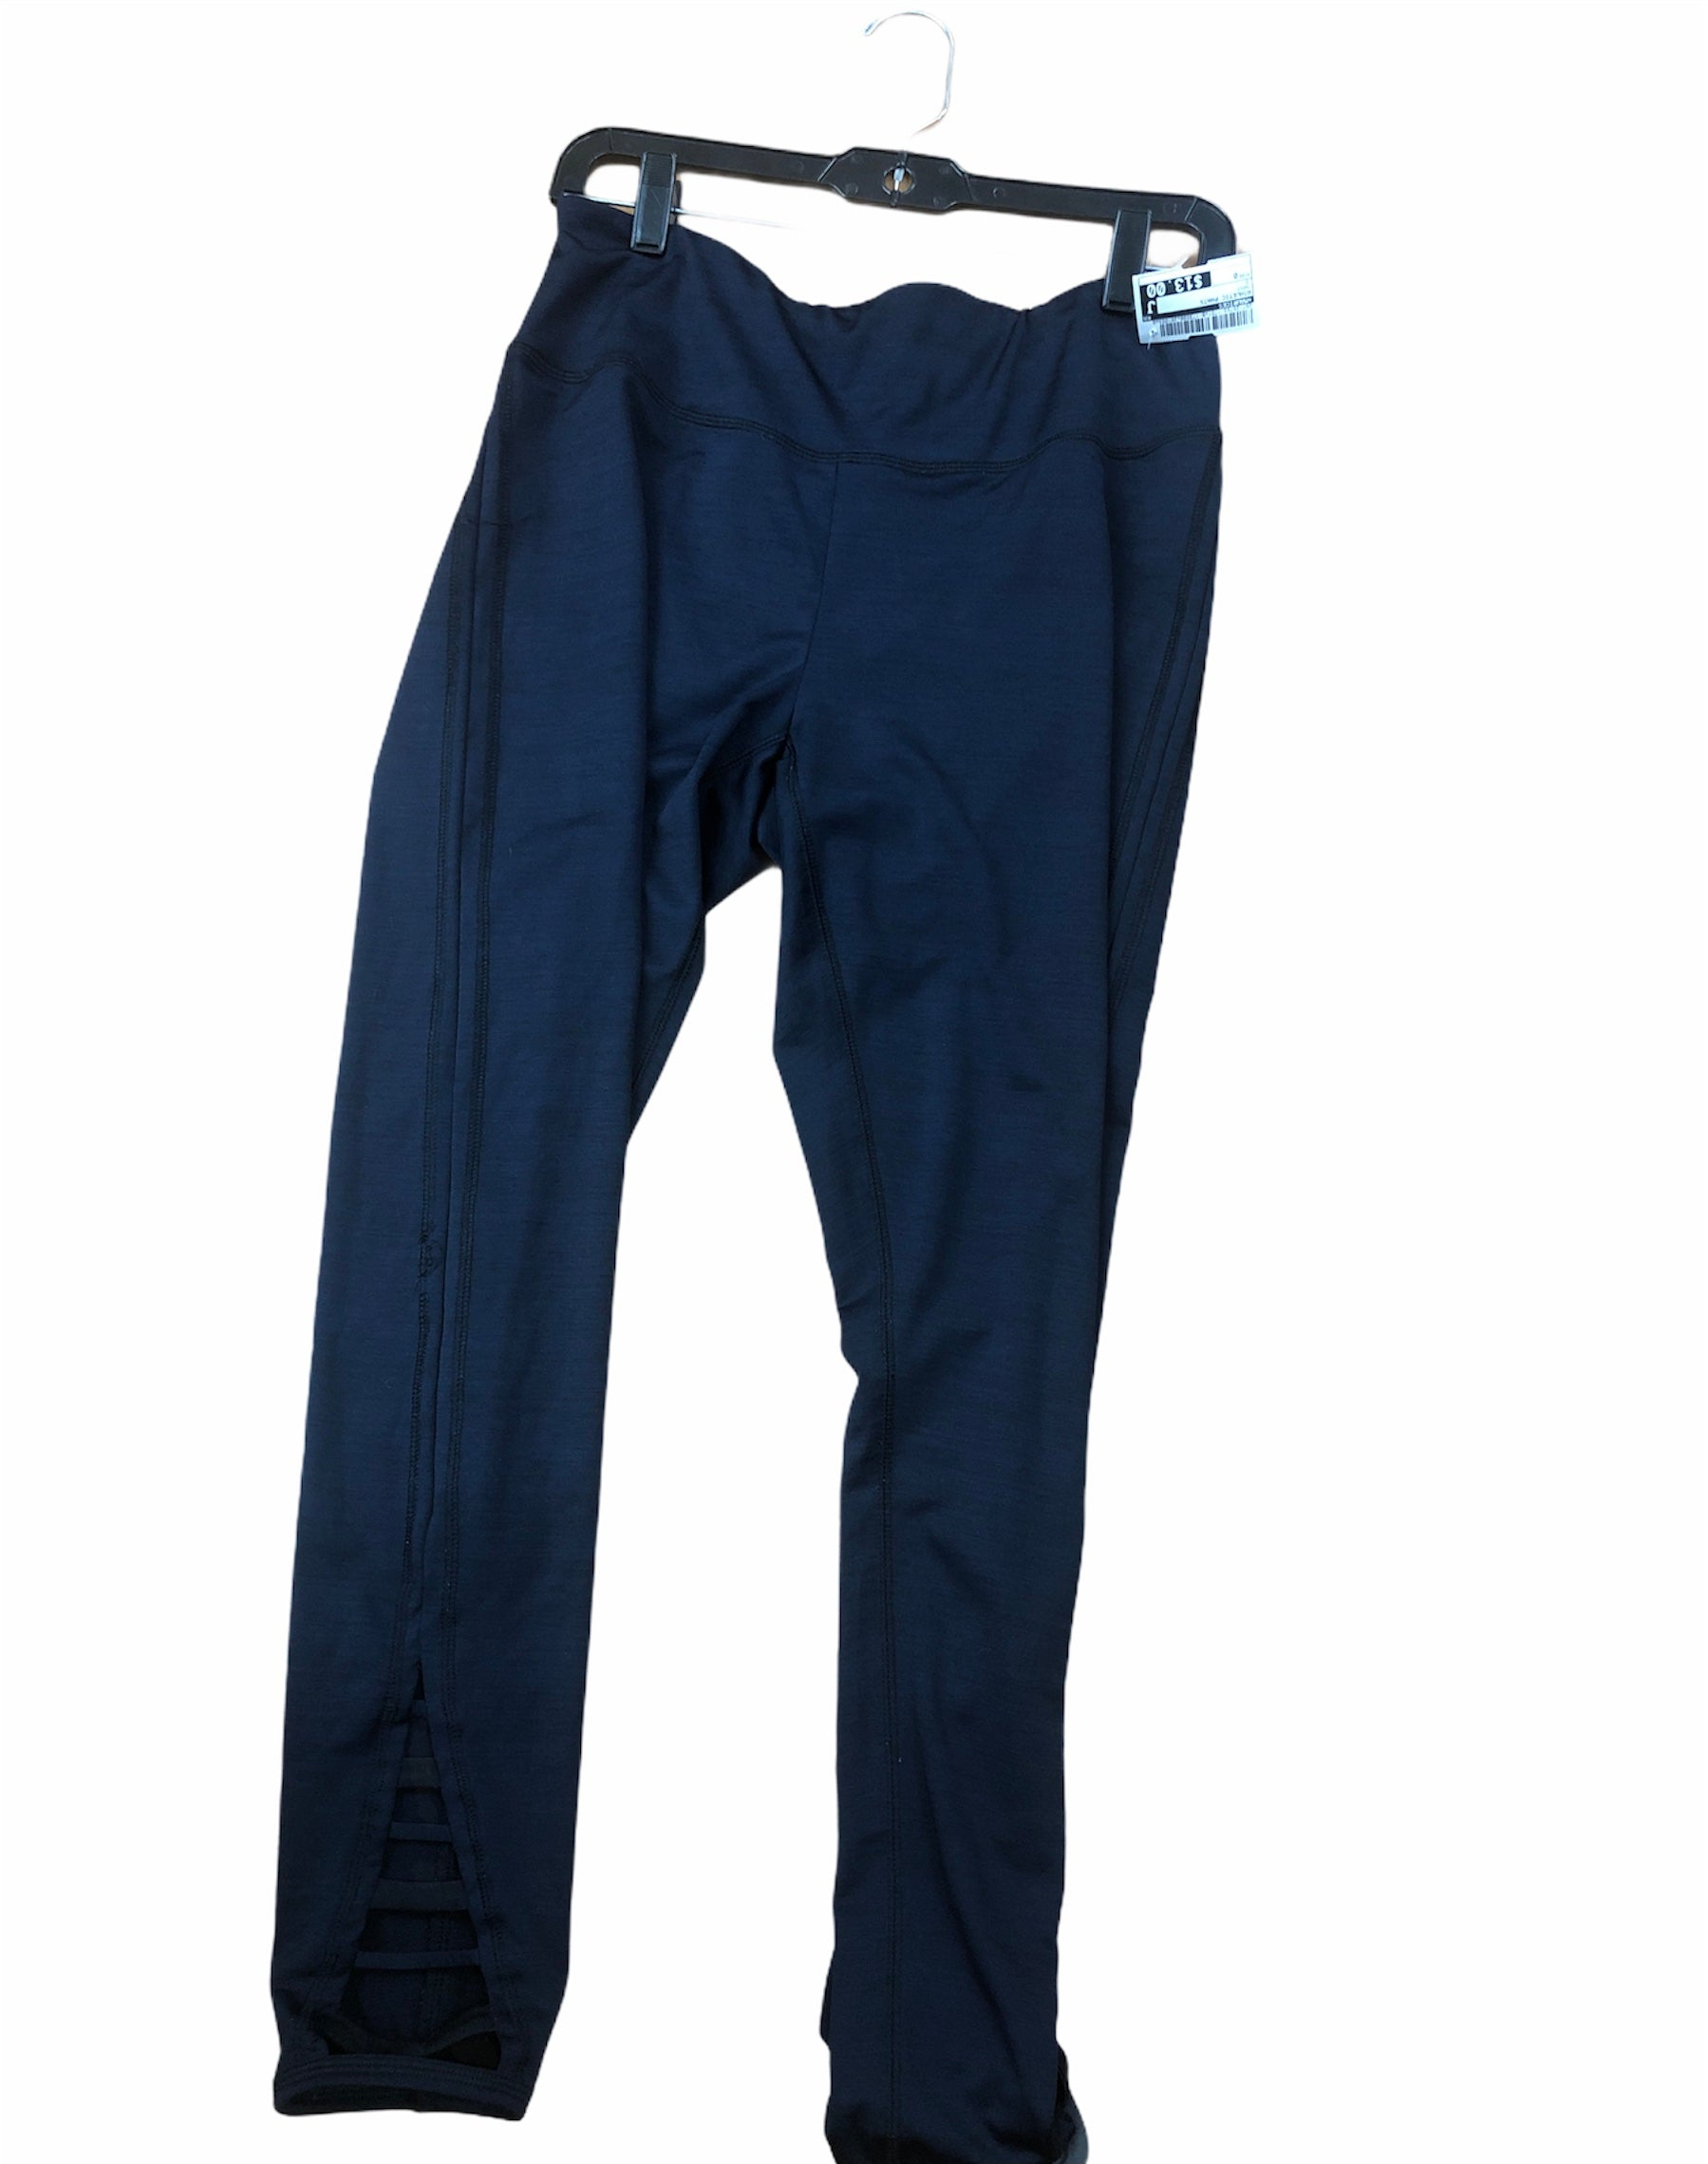 Primary Photo - brand: maurices , style: athletic pants , color: navy , size: 0 , sku: 267-26793-1701